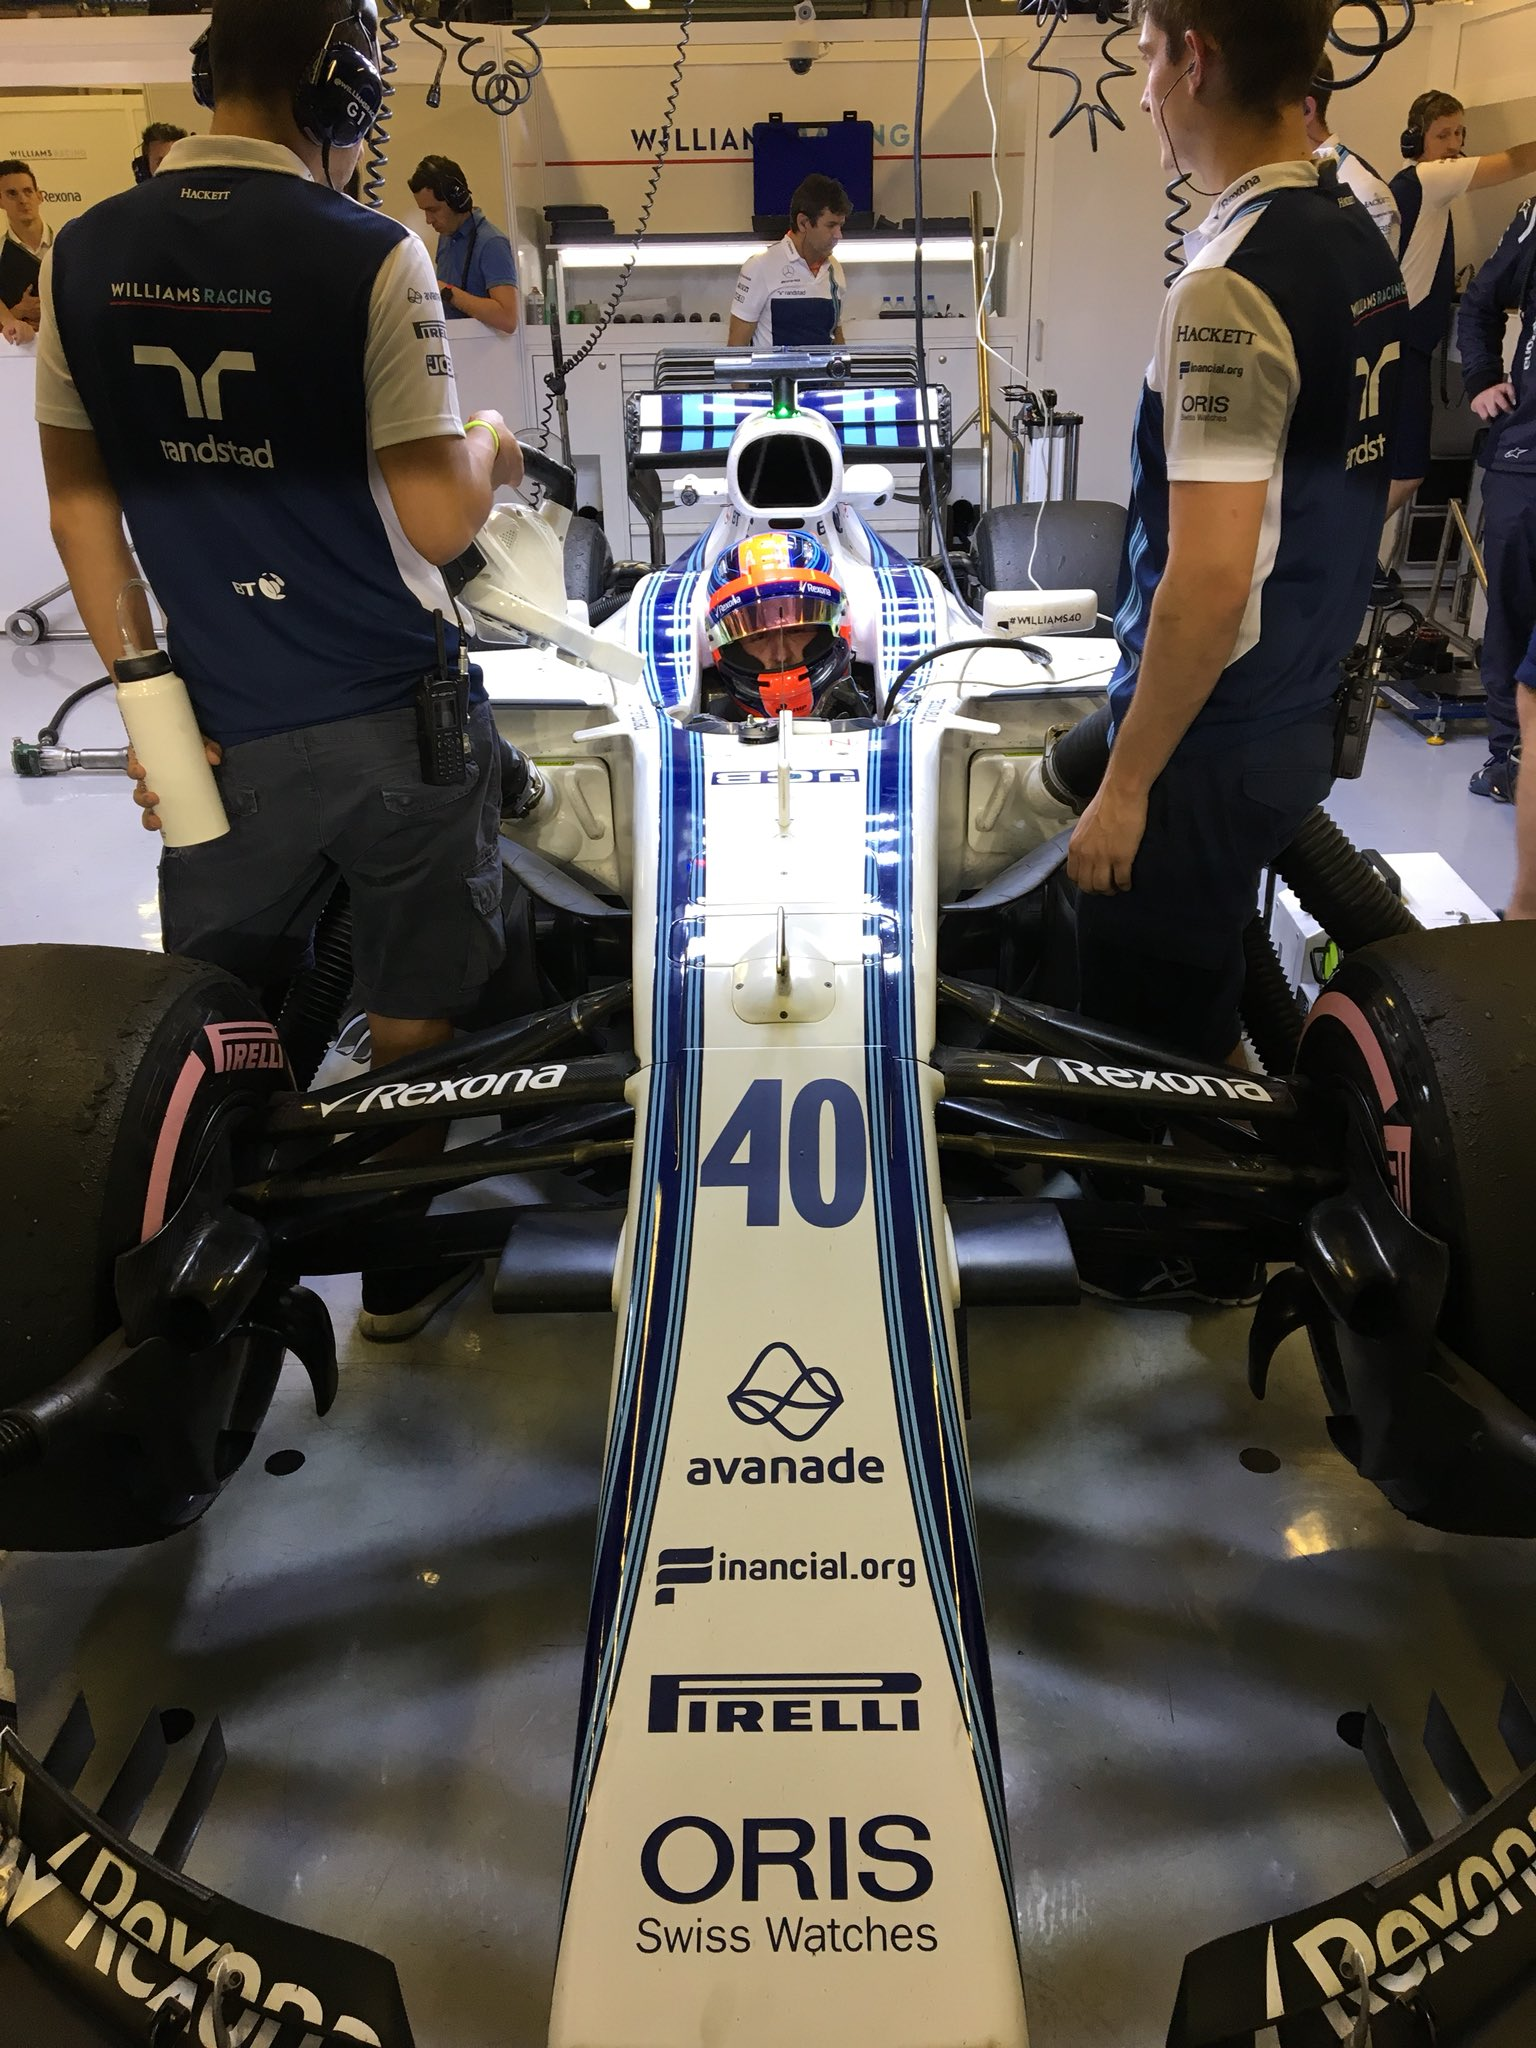 Foto: WILLIAMS RACING / Twitter